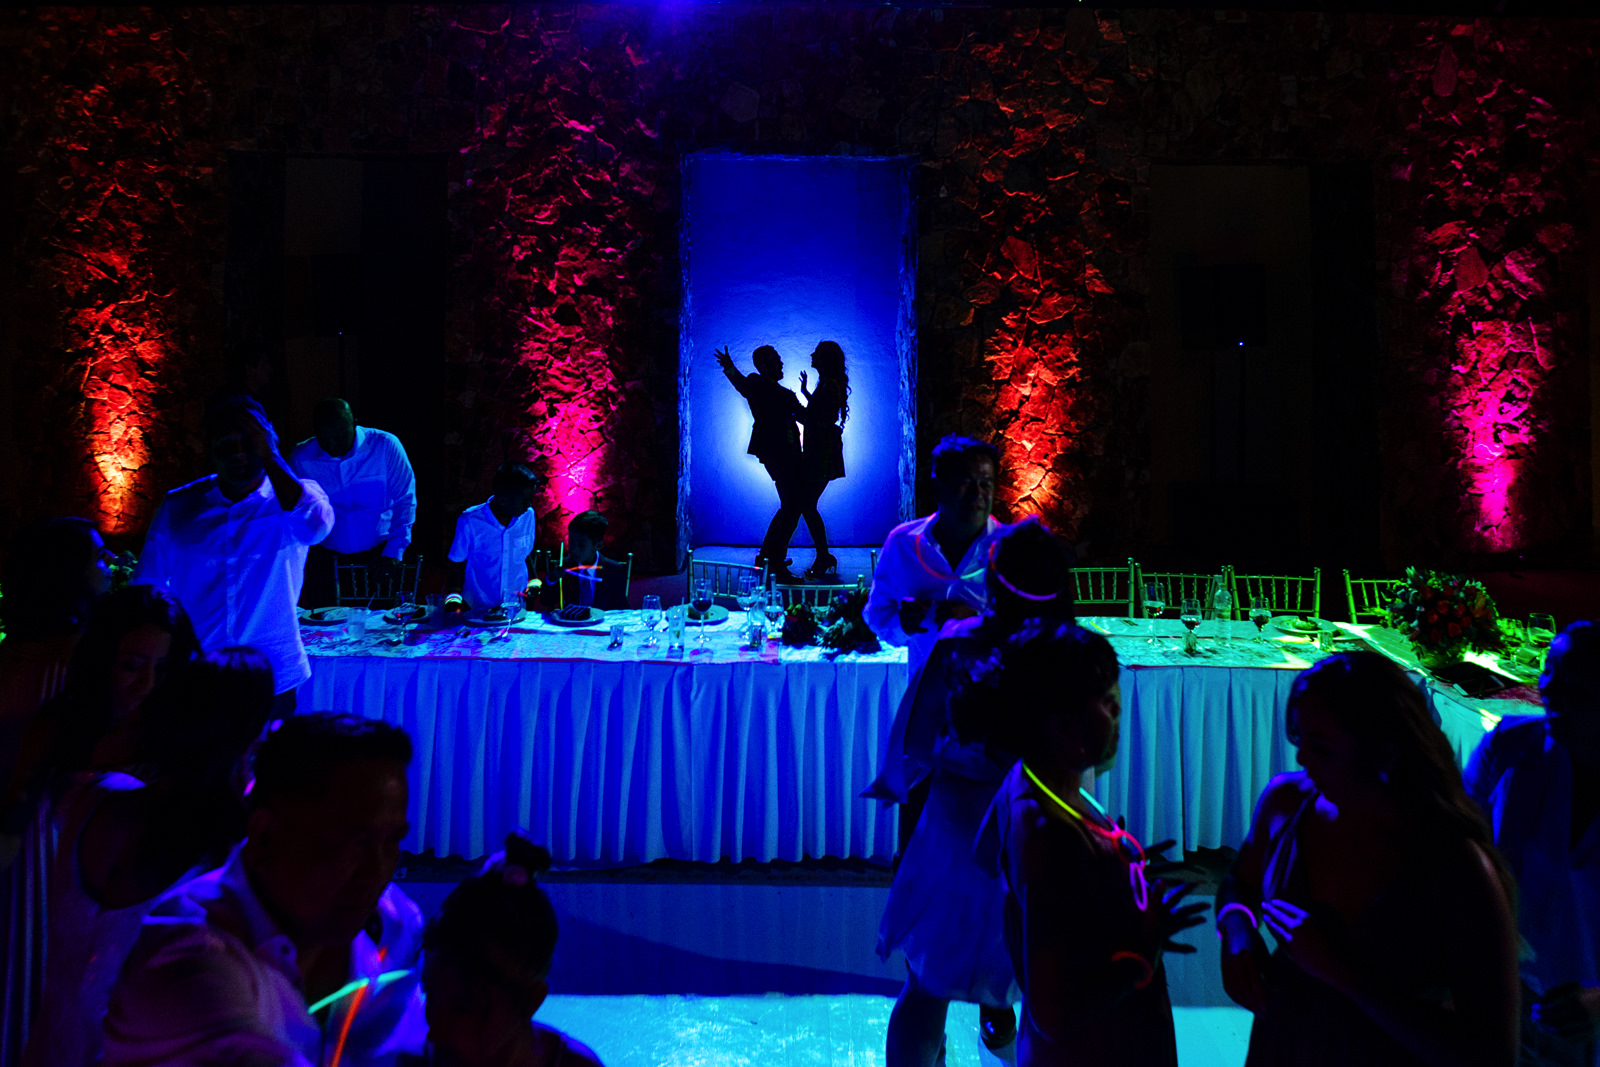 Bride and groom silhouette of them dancing while their guests